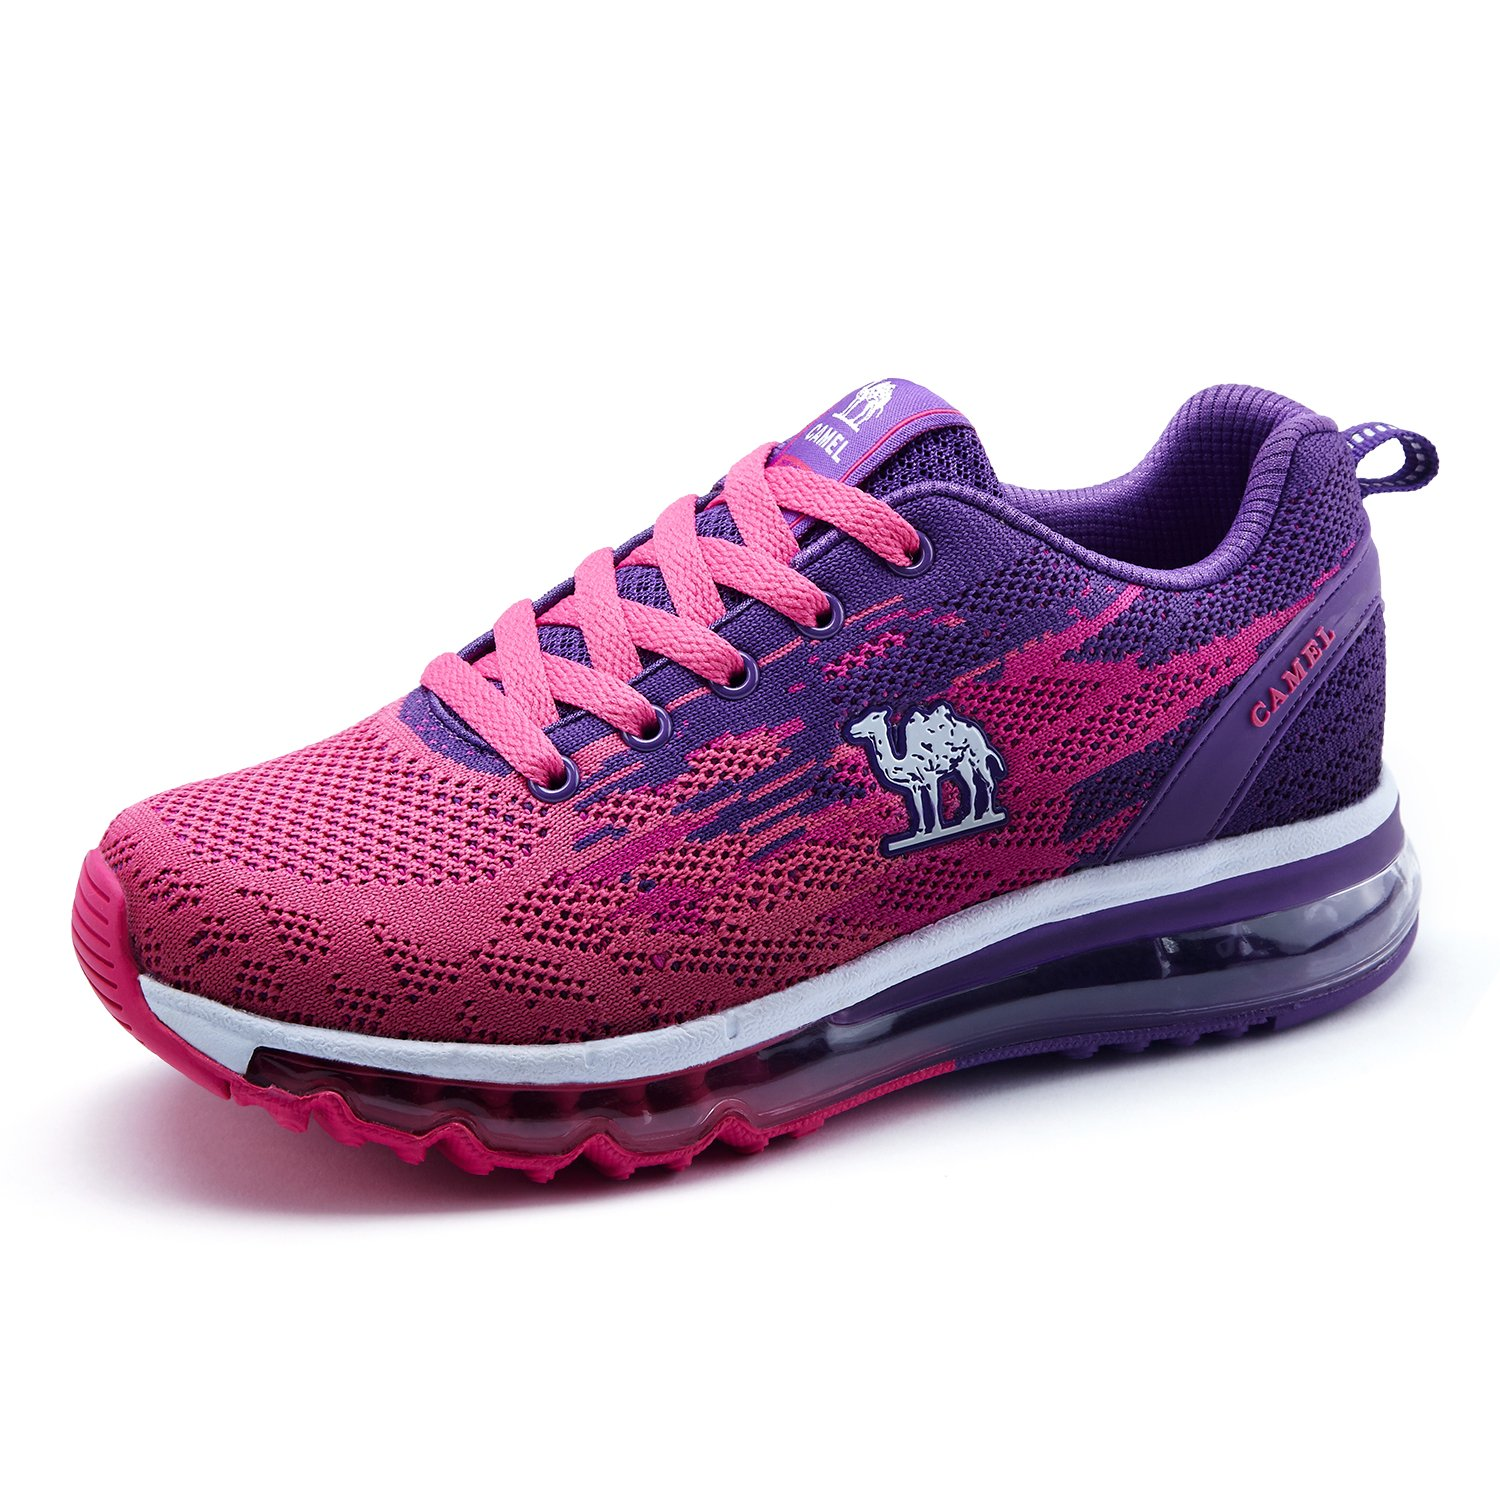 Camel Women's Fashion Sneakers Outdoor Lace-up Trail Running Shoes with Air Cushion Lightweight Breathable Color Purple Size 5.5